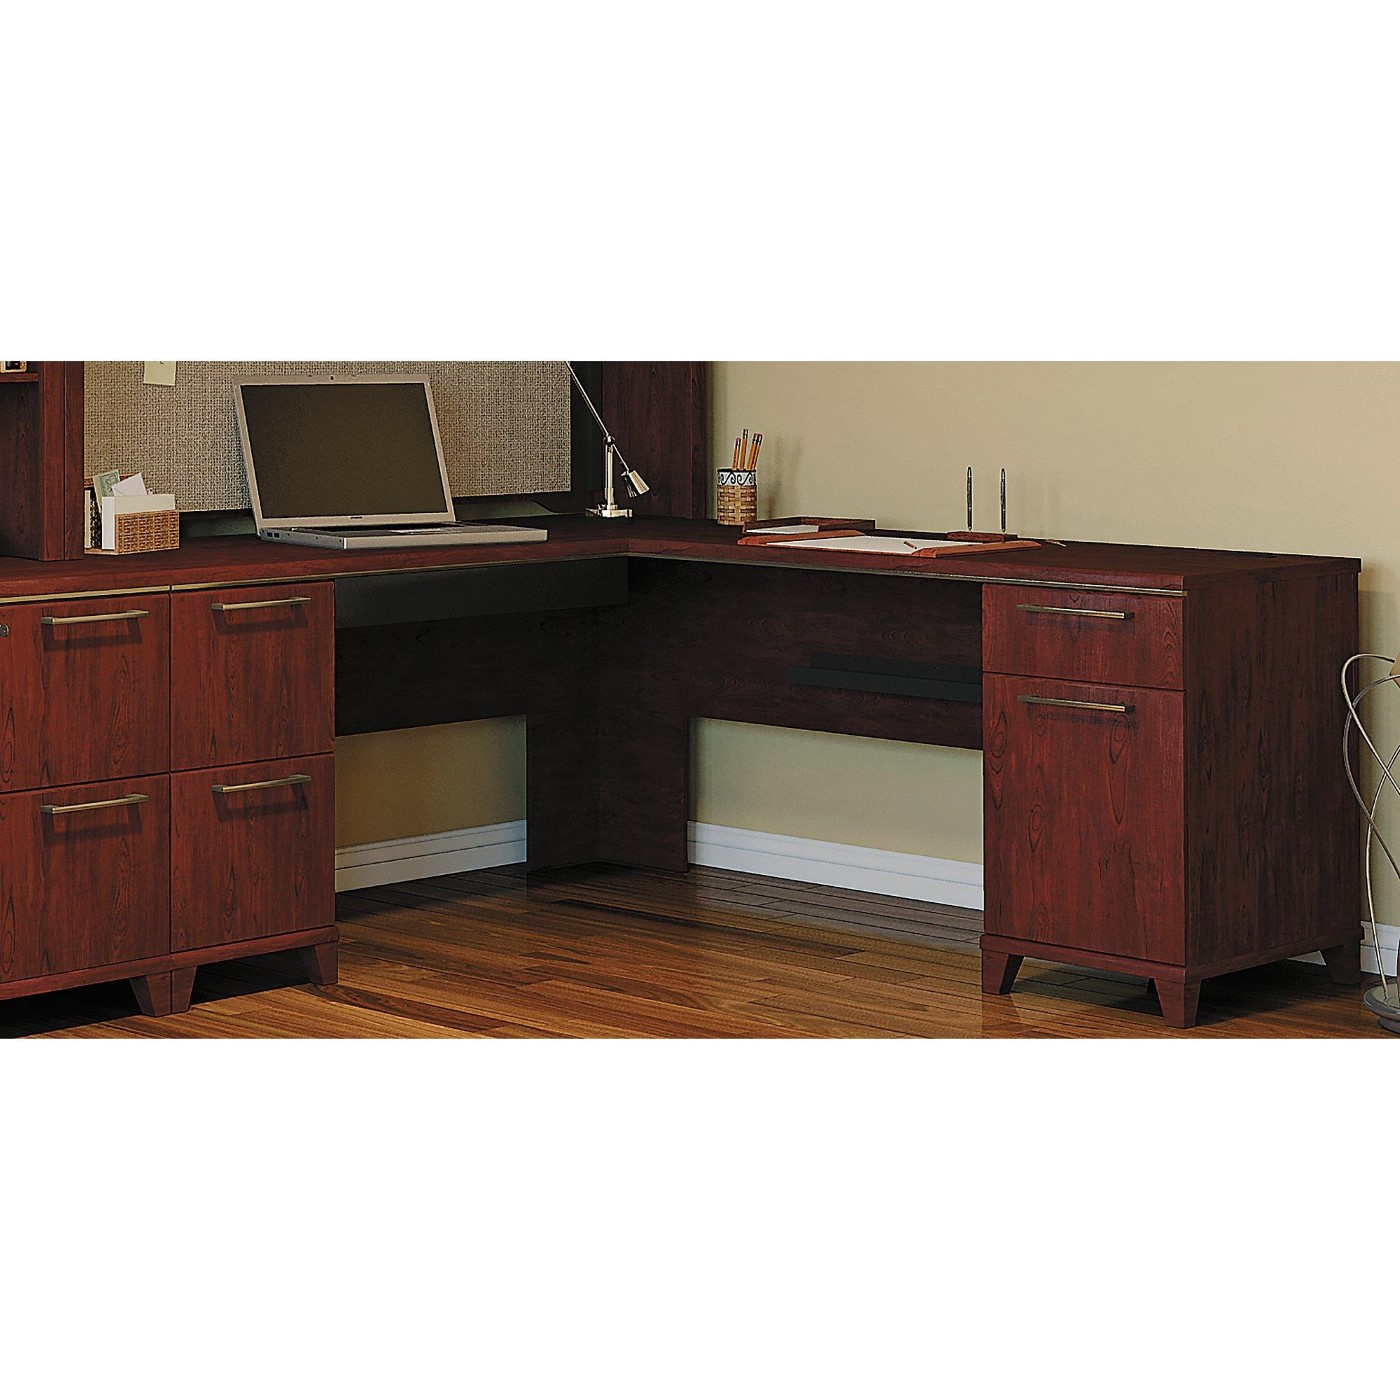 BUSH BUSINESS FURNITURE ENTERPRISE HARVEST CHERRY 72W X 72D L SHAPED DESK</b></font></font></b>&#x1F384<font color=red><b>ERGONOMICHOME HOLIDAY SALE - ENDS DEC. 17, 2019</b></font>&#x1F384